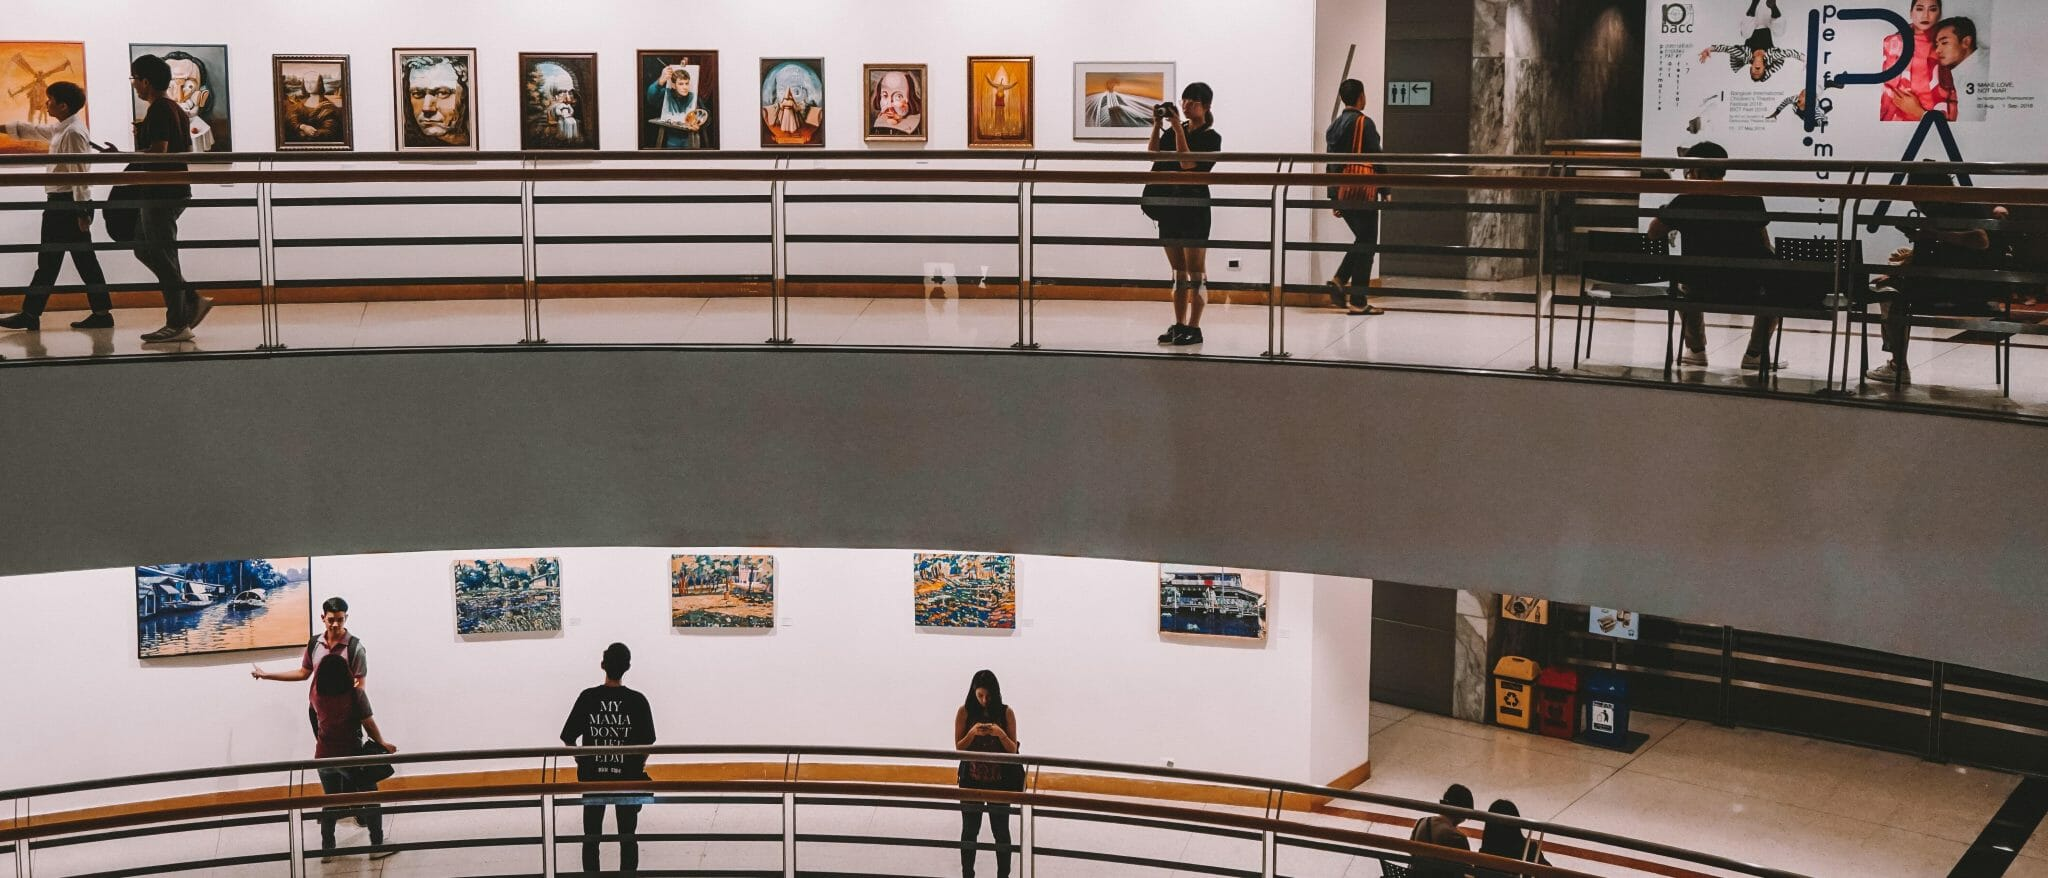 A picture of people in an art gallery with paintings aligned in rows along the walls. On two balcony levels, people are walking, looking at the paintings or taking pictures.